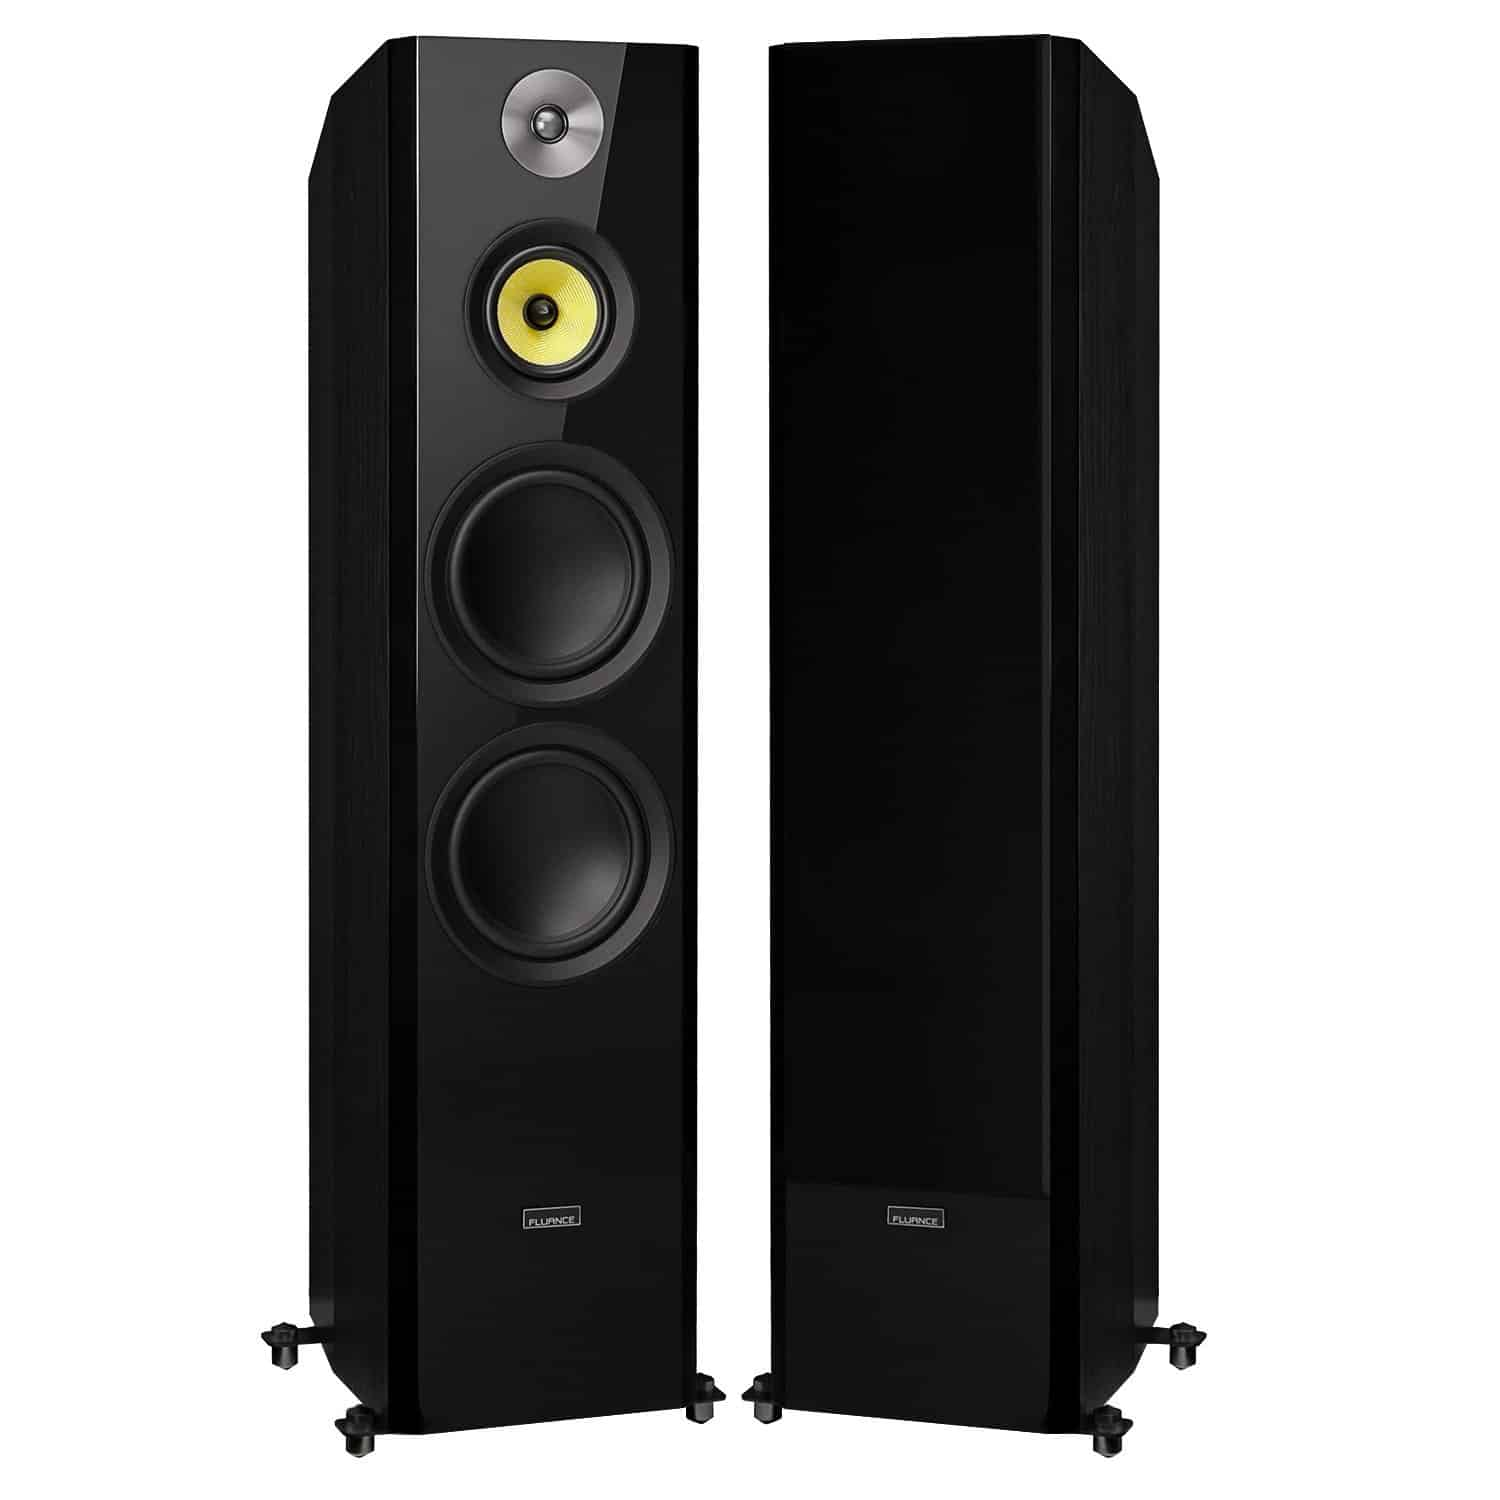 Fluance Signature Series Hi-Fi Floorstanding Tower Speakers